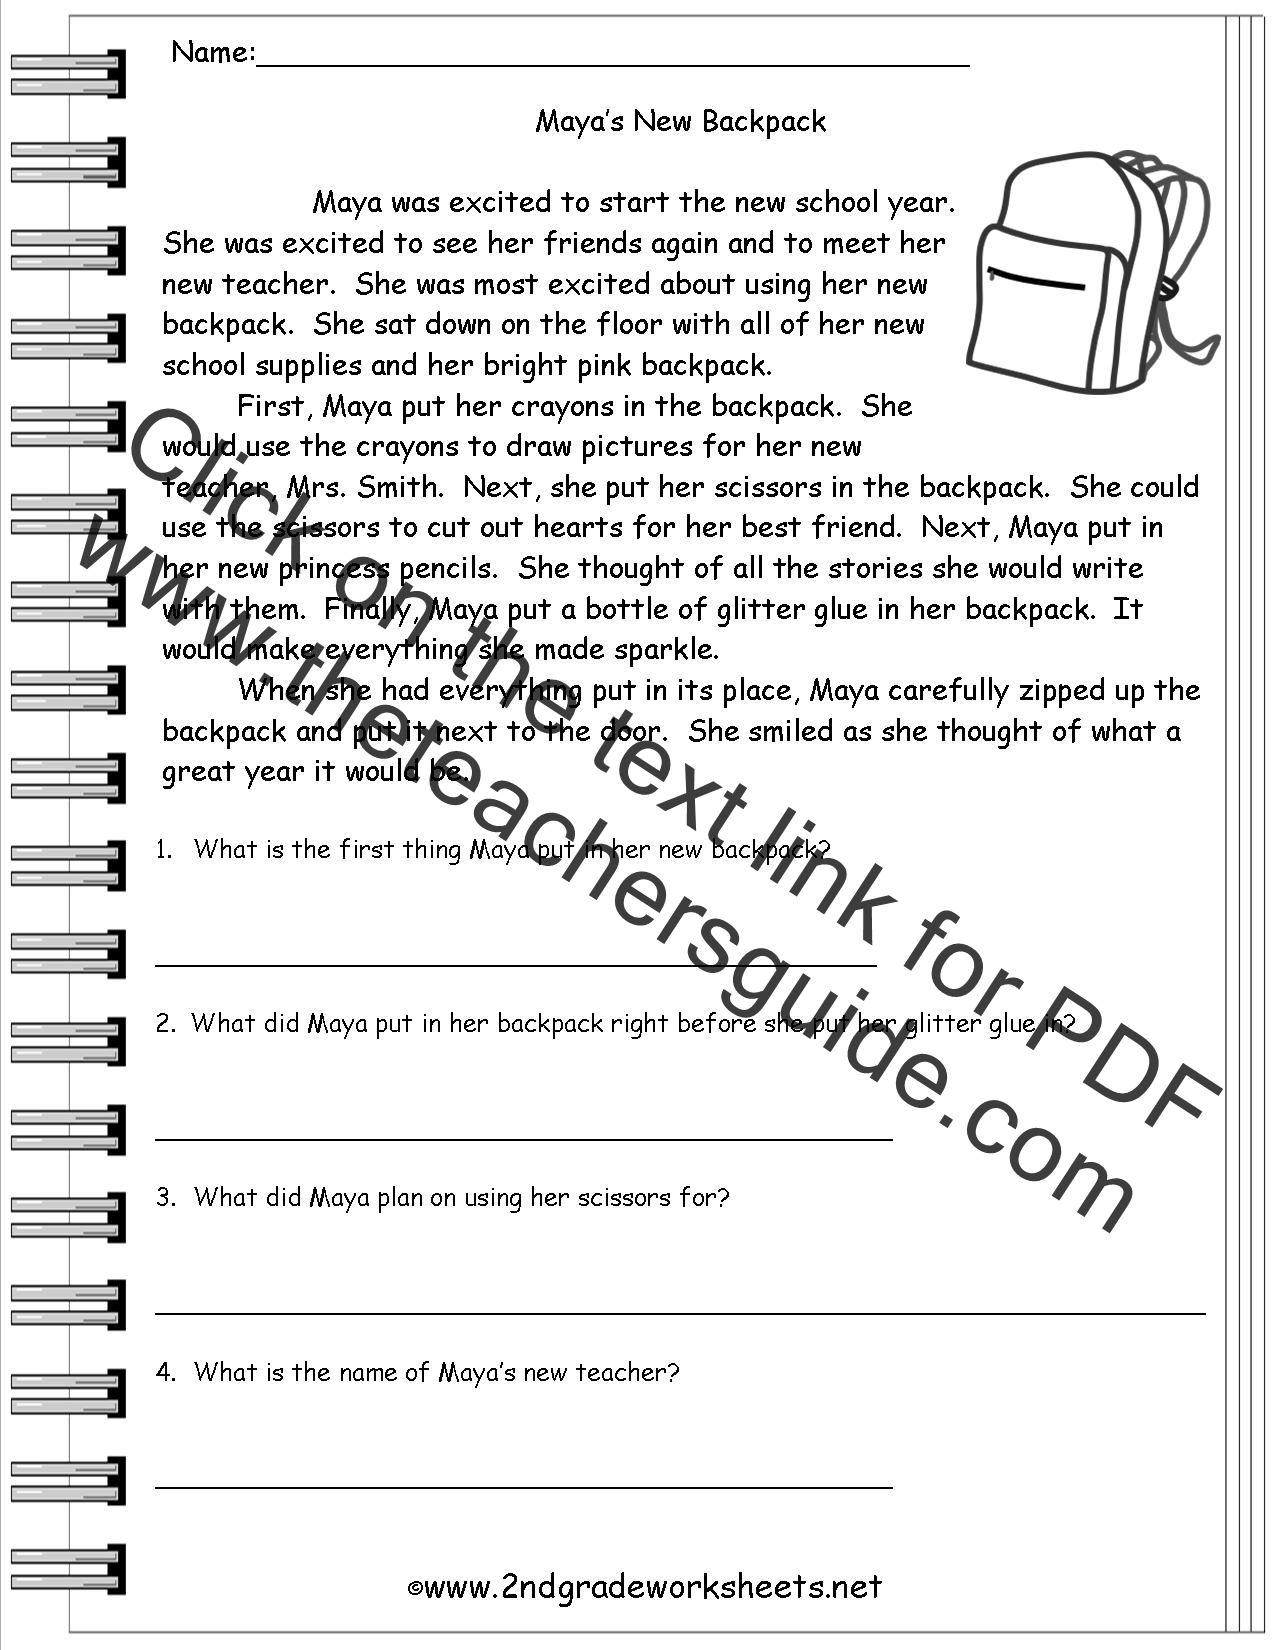 Worksheets Free 5th Grade Reading Worksheets reading worksheeets worksheets